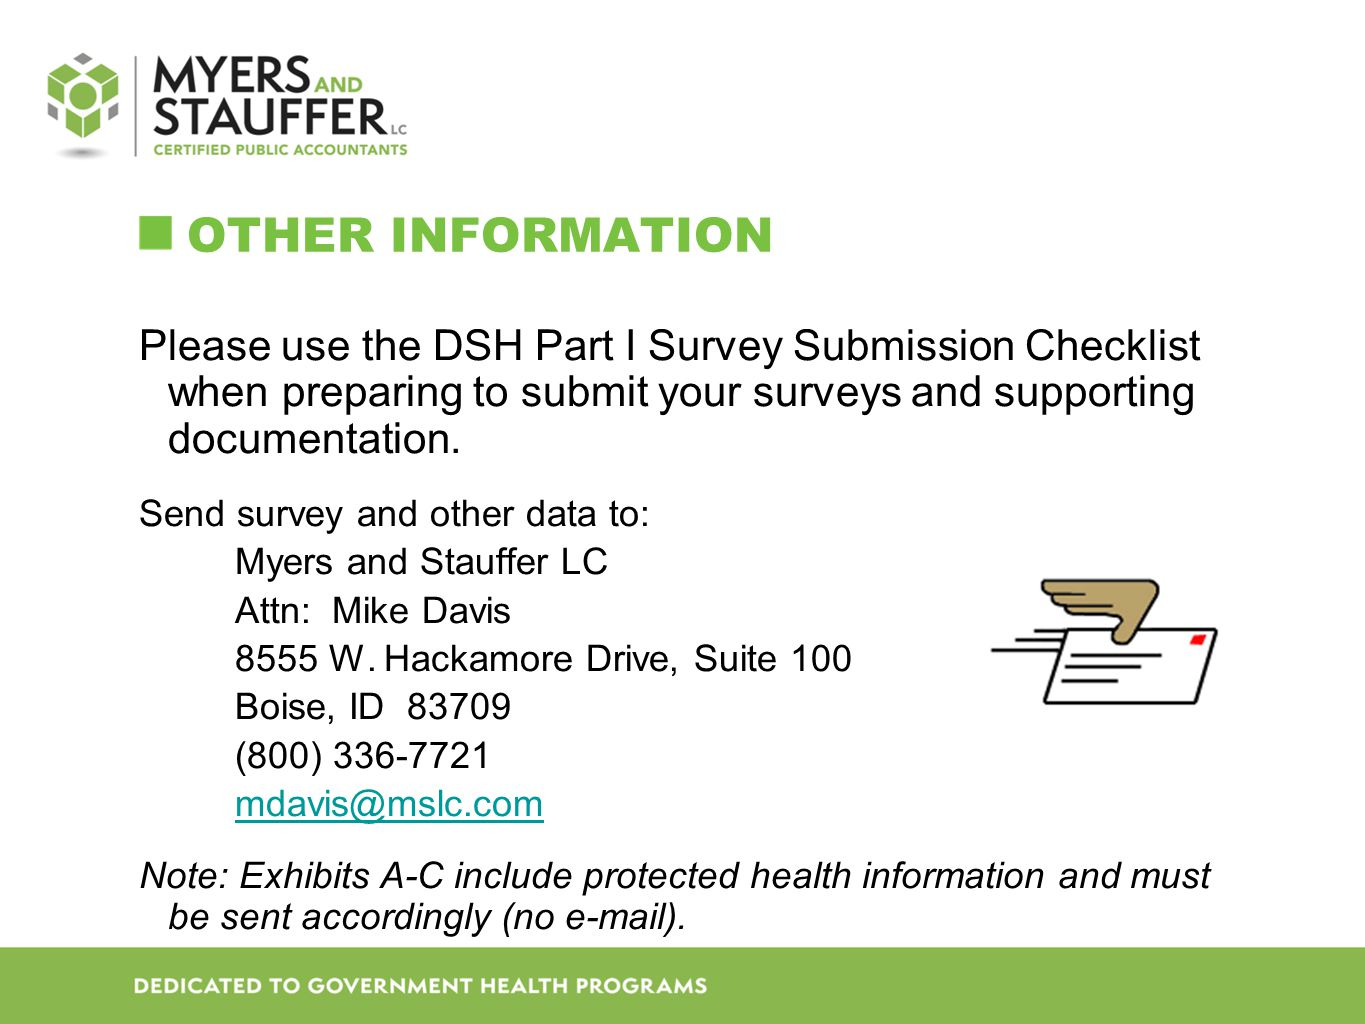 OTHER INFORMATION Please use the DSH Part I Survey Submission Checklist when preparing to submit your surveys and supporting documentation.